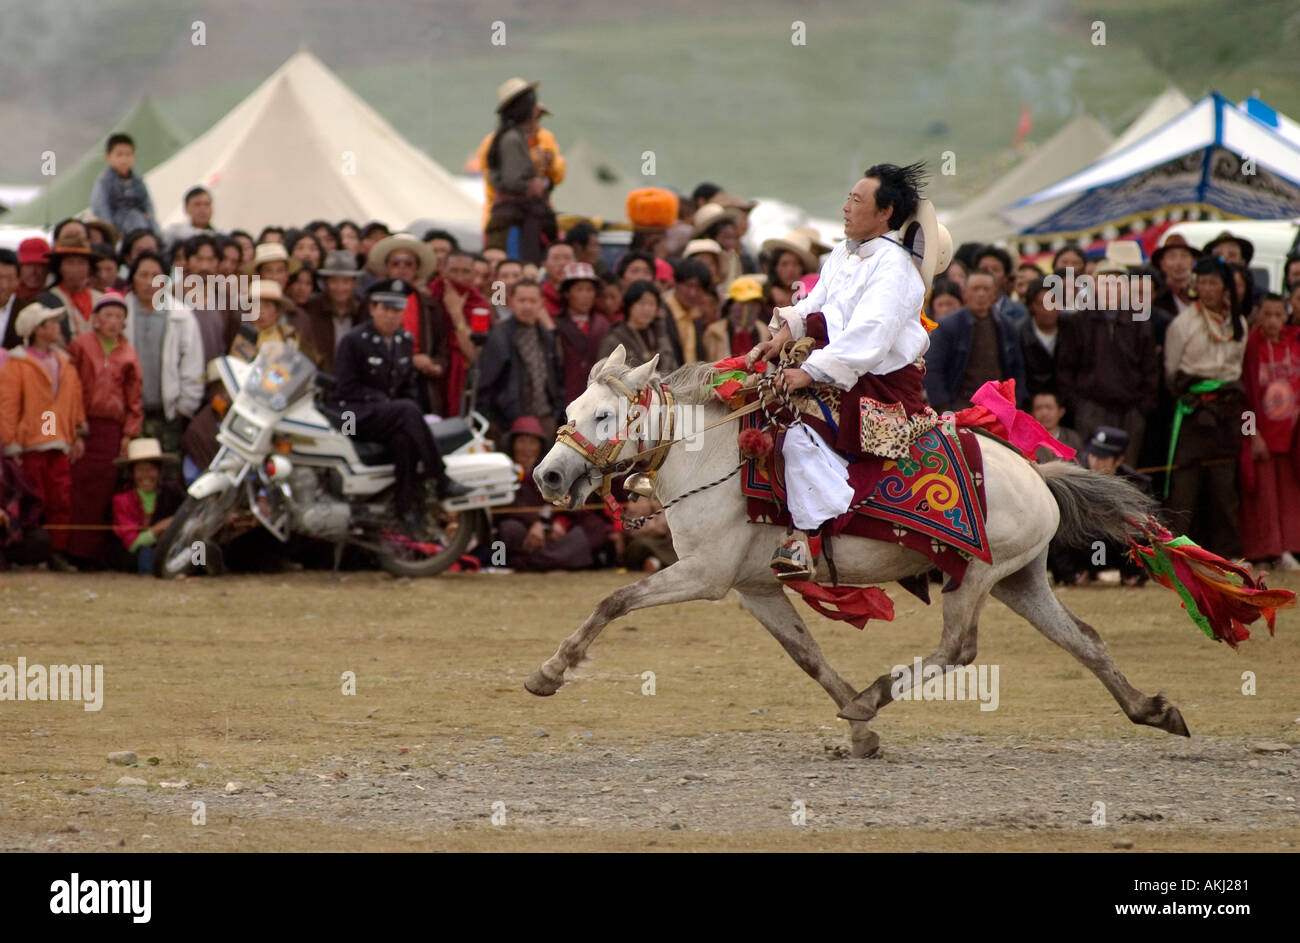 A Khampa participates in the dressage competition at the Litang Horse Festival in Kham Sichuan Province China Tibet  - Stock Image